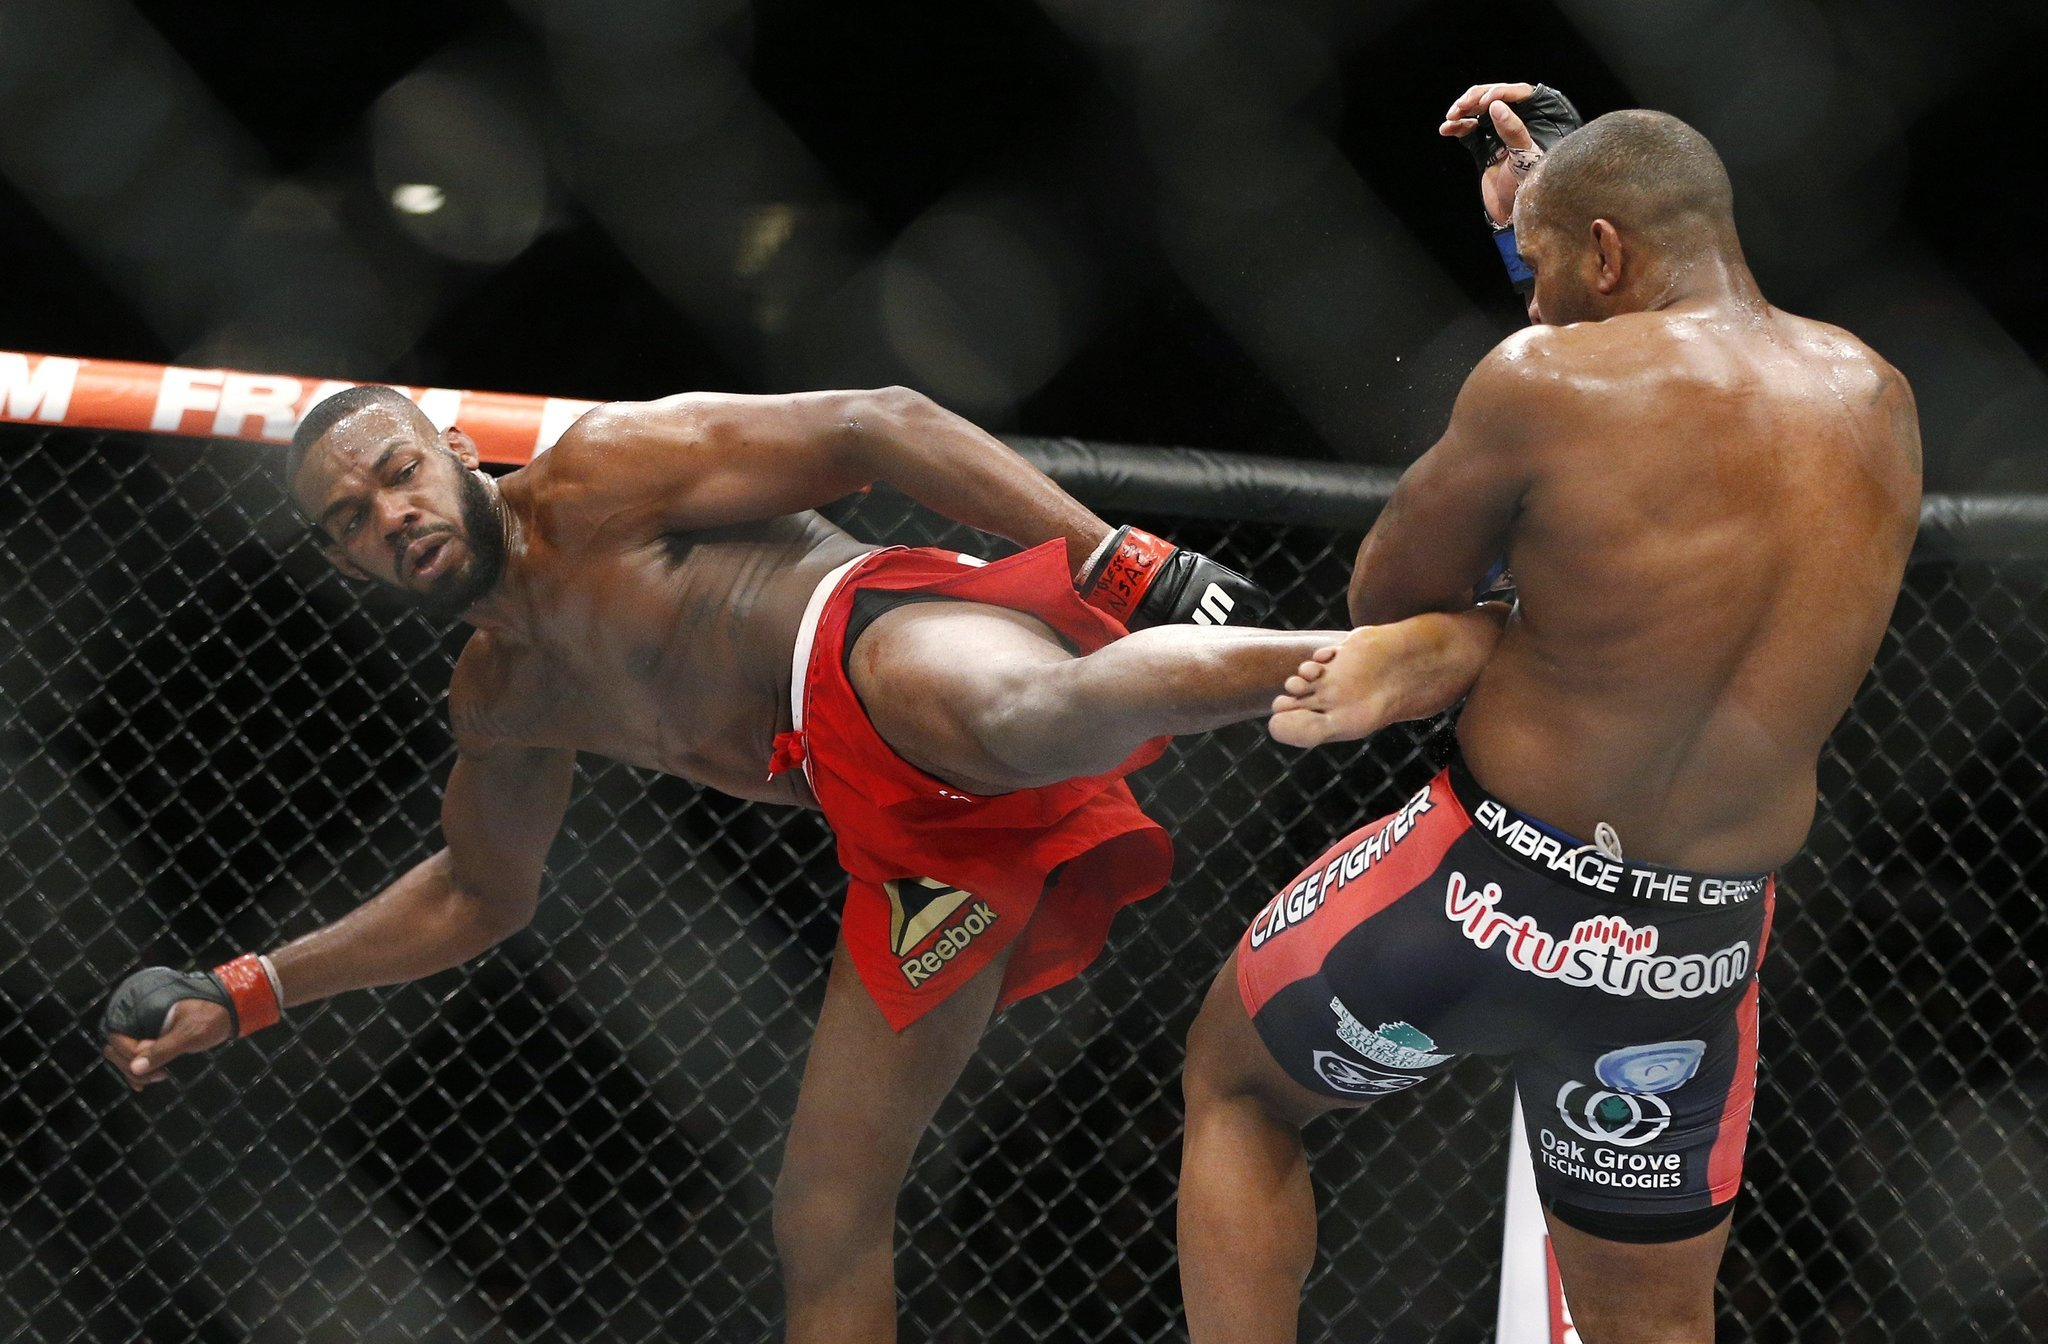 the ultimate fighting championships marketing Masters of science in sports business management with over 10 years of  experience at two entertainment juggernauts the ultimate fighting  championship.